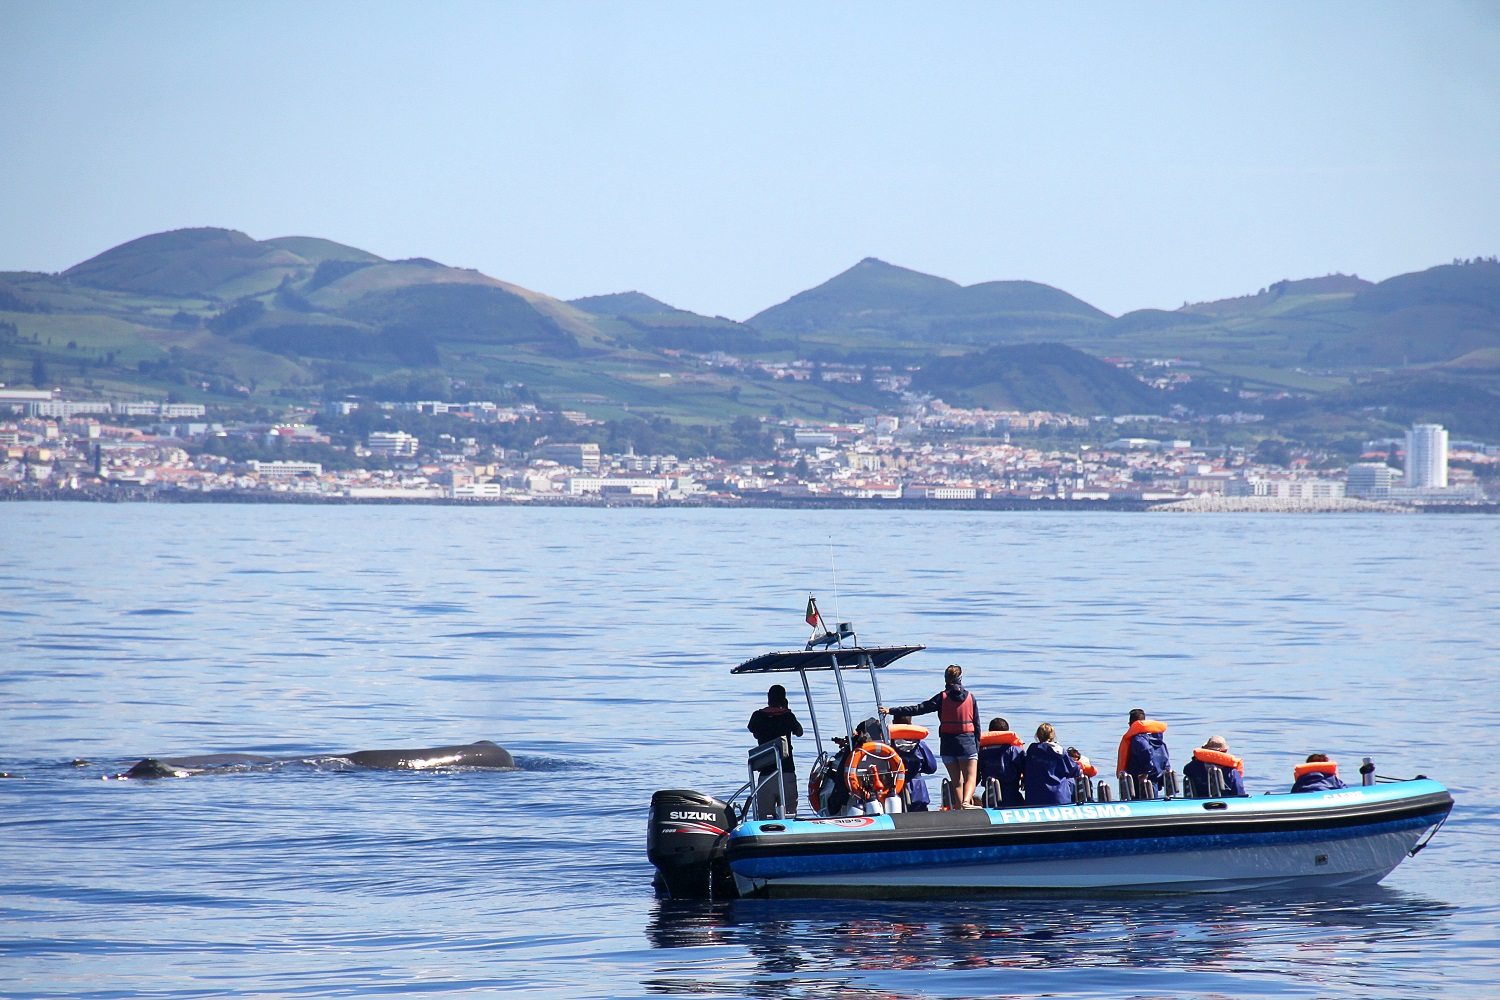 Atlantic Whale Watching & Dolphin Safari Day Trip in the Azores